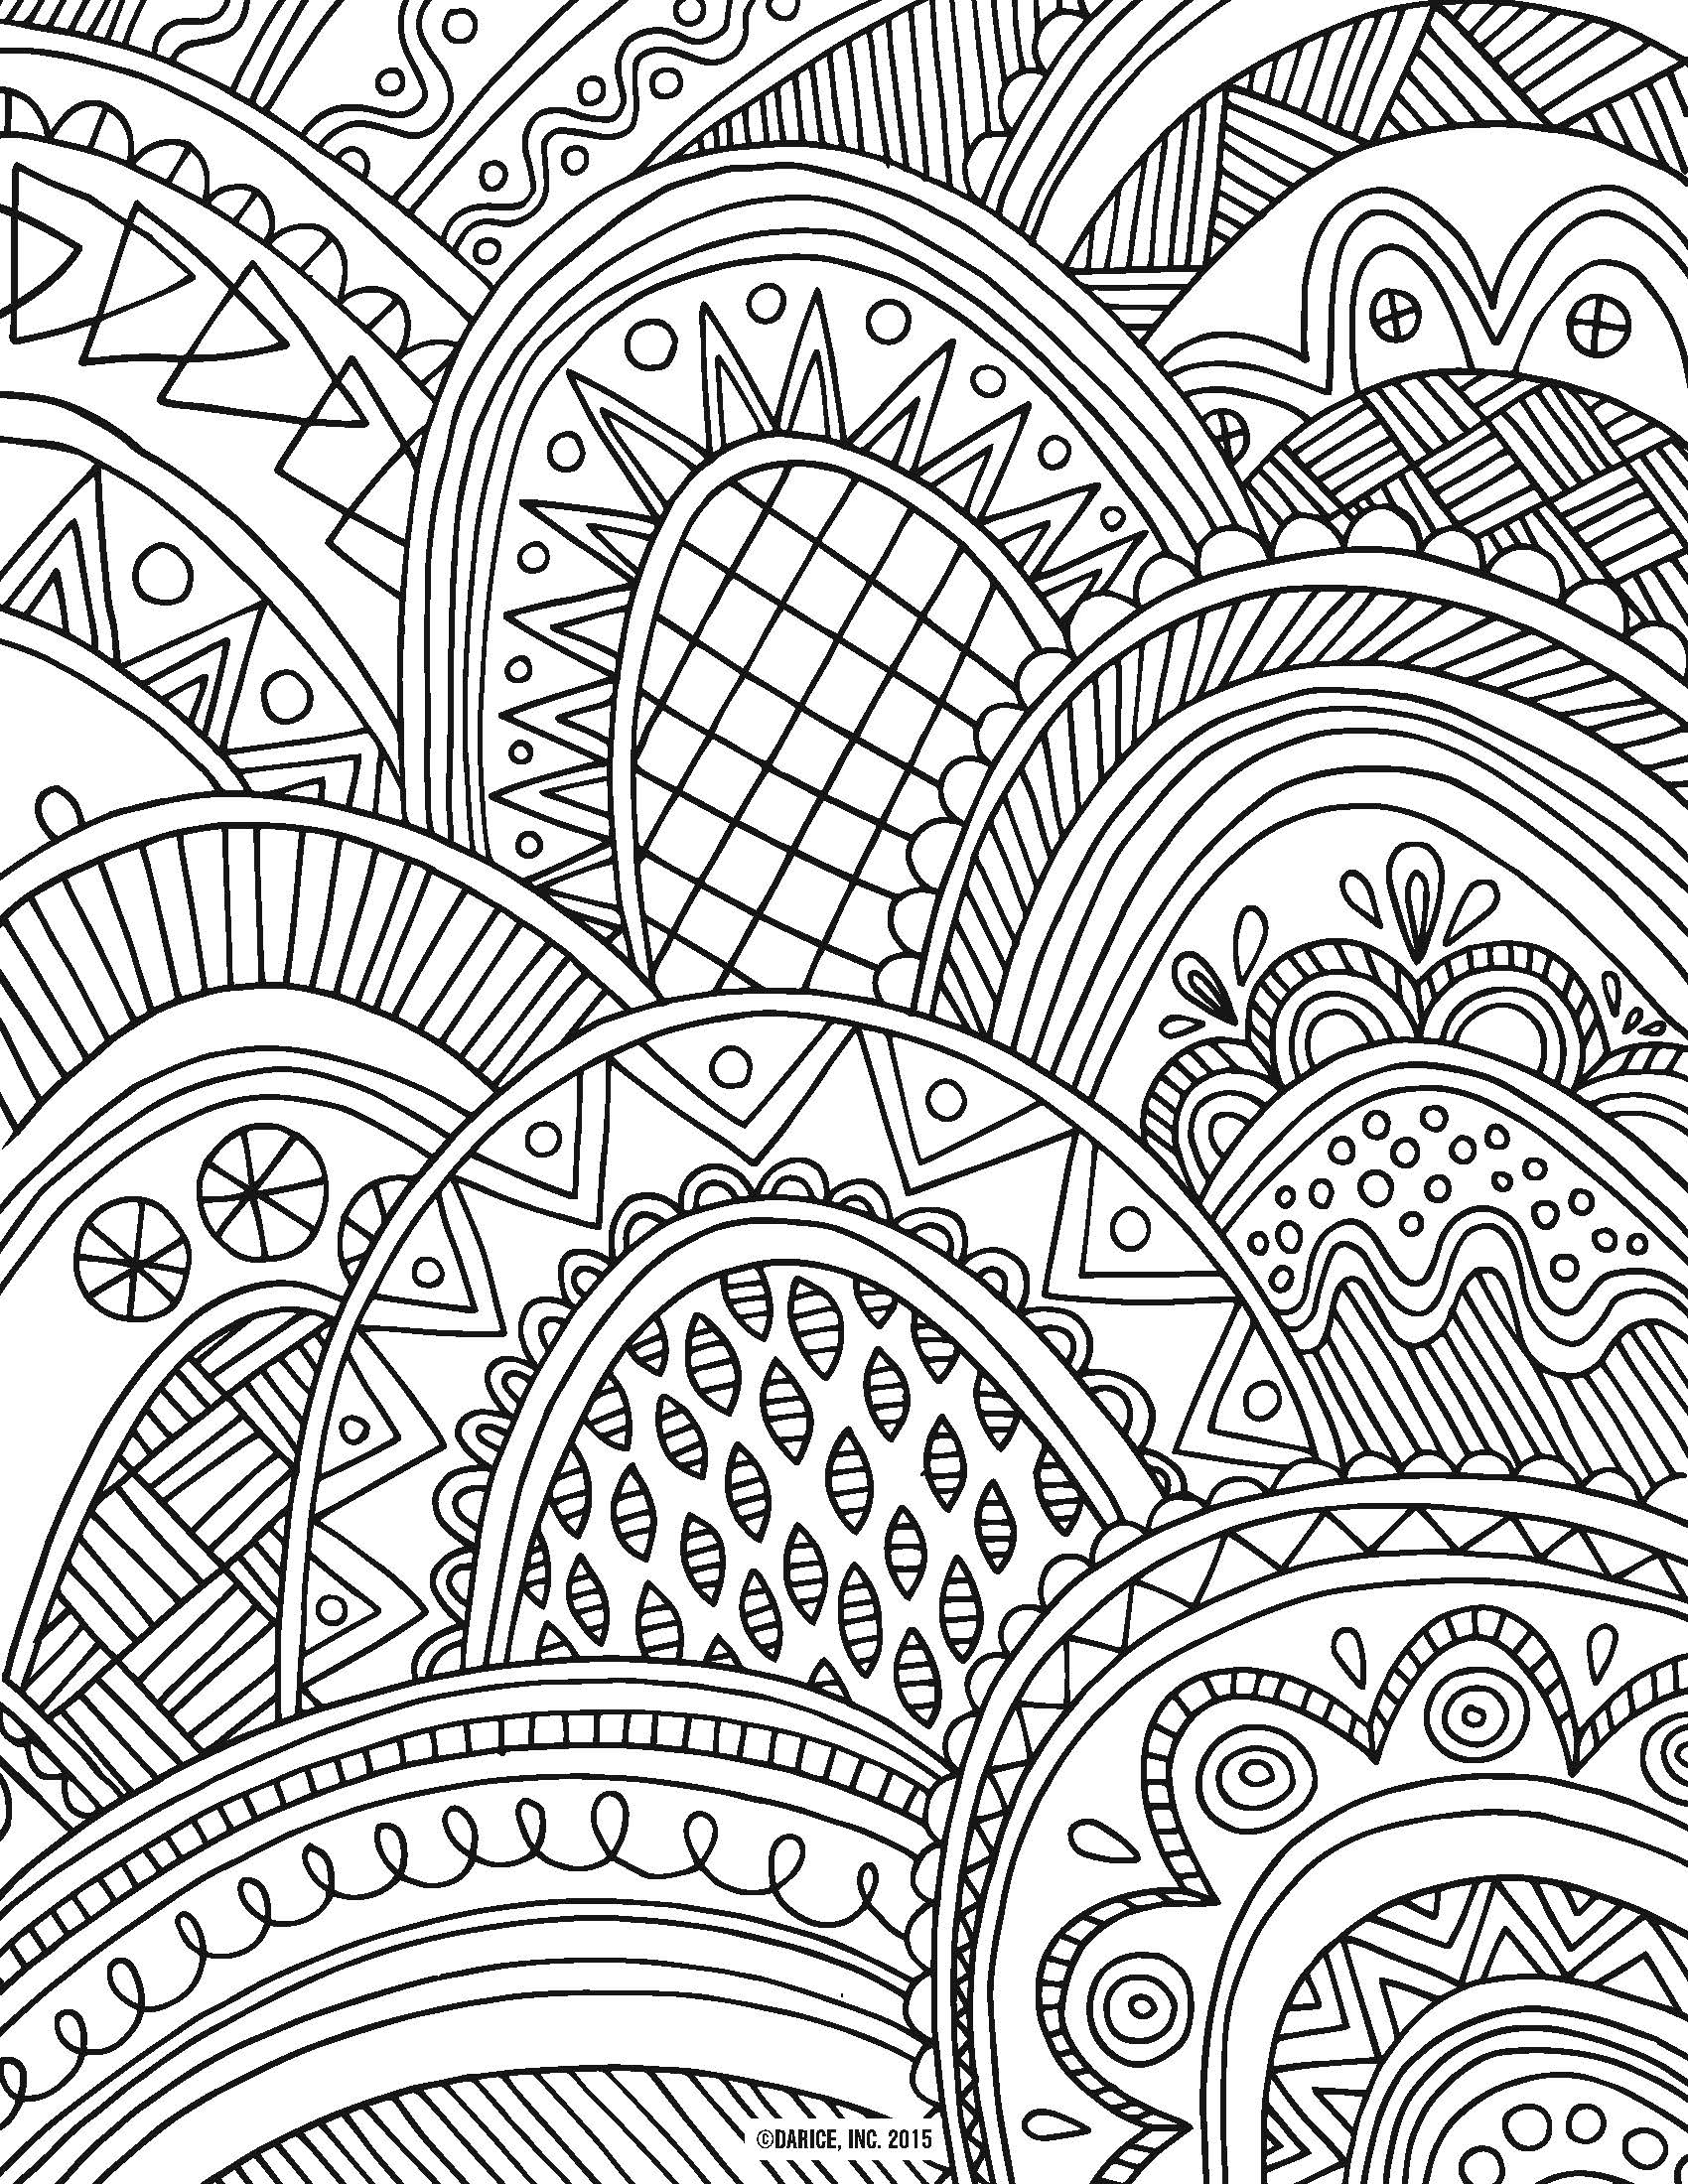 printables coloring pages free printable tangled coloring pages for kids pages printables coloring